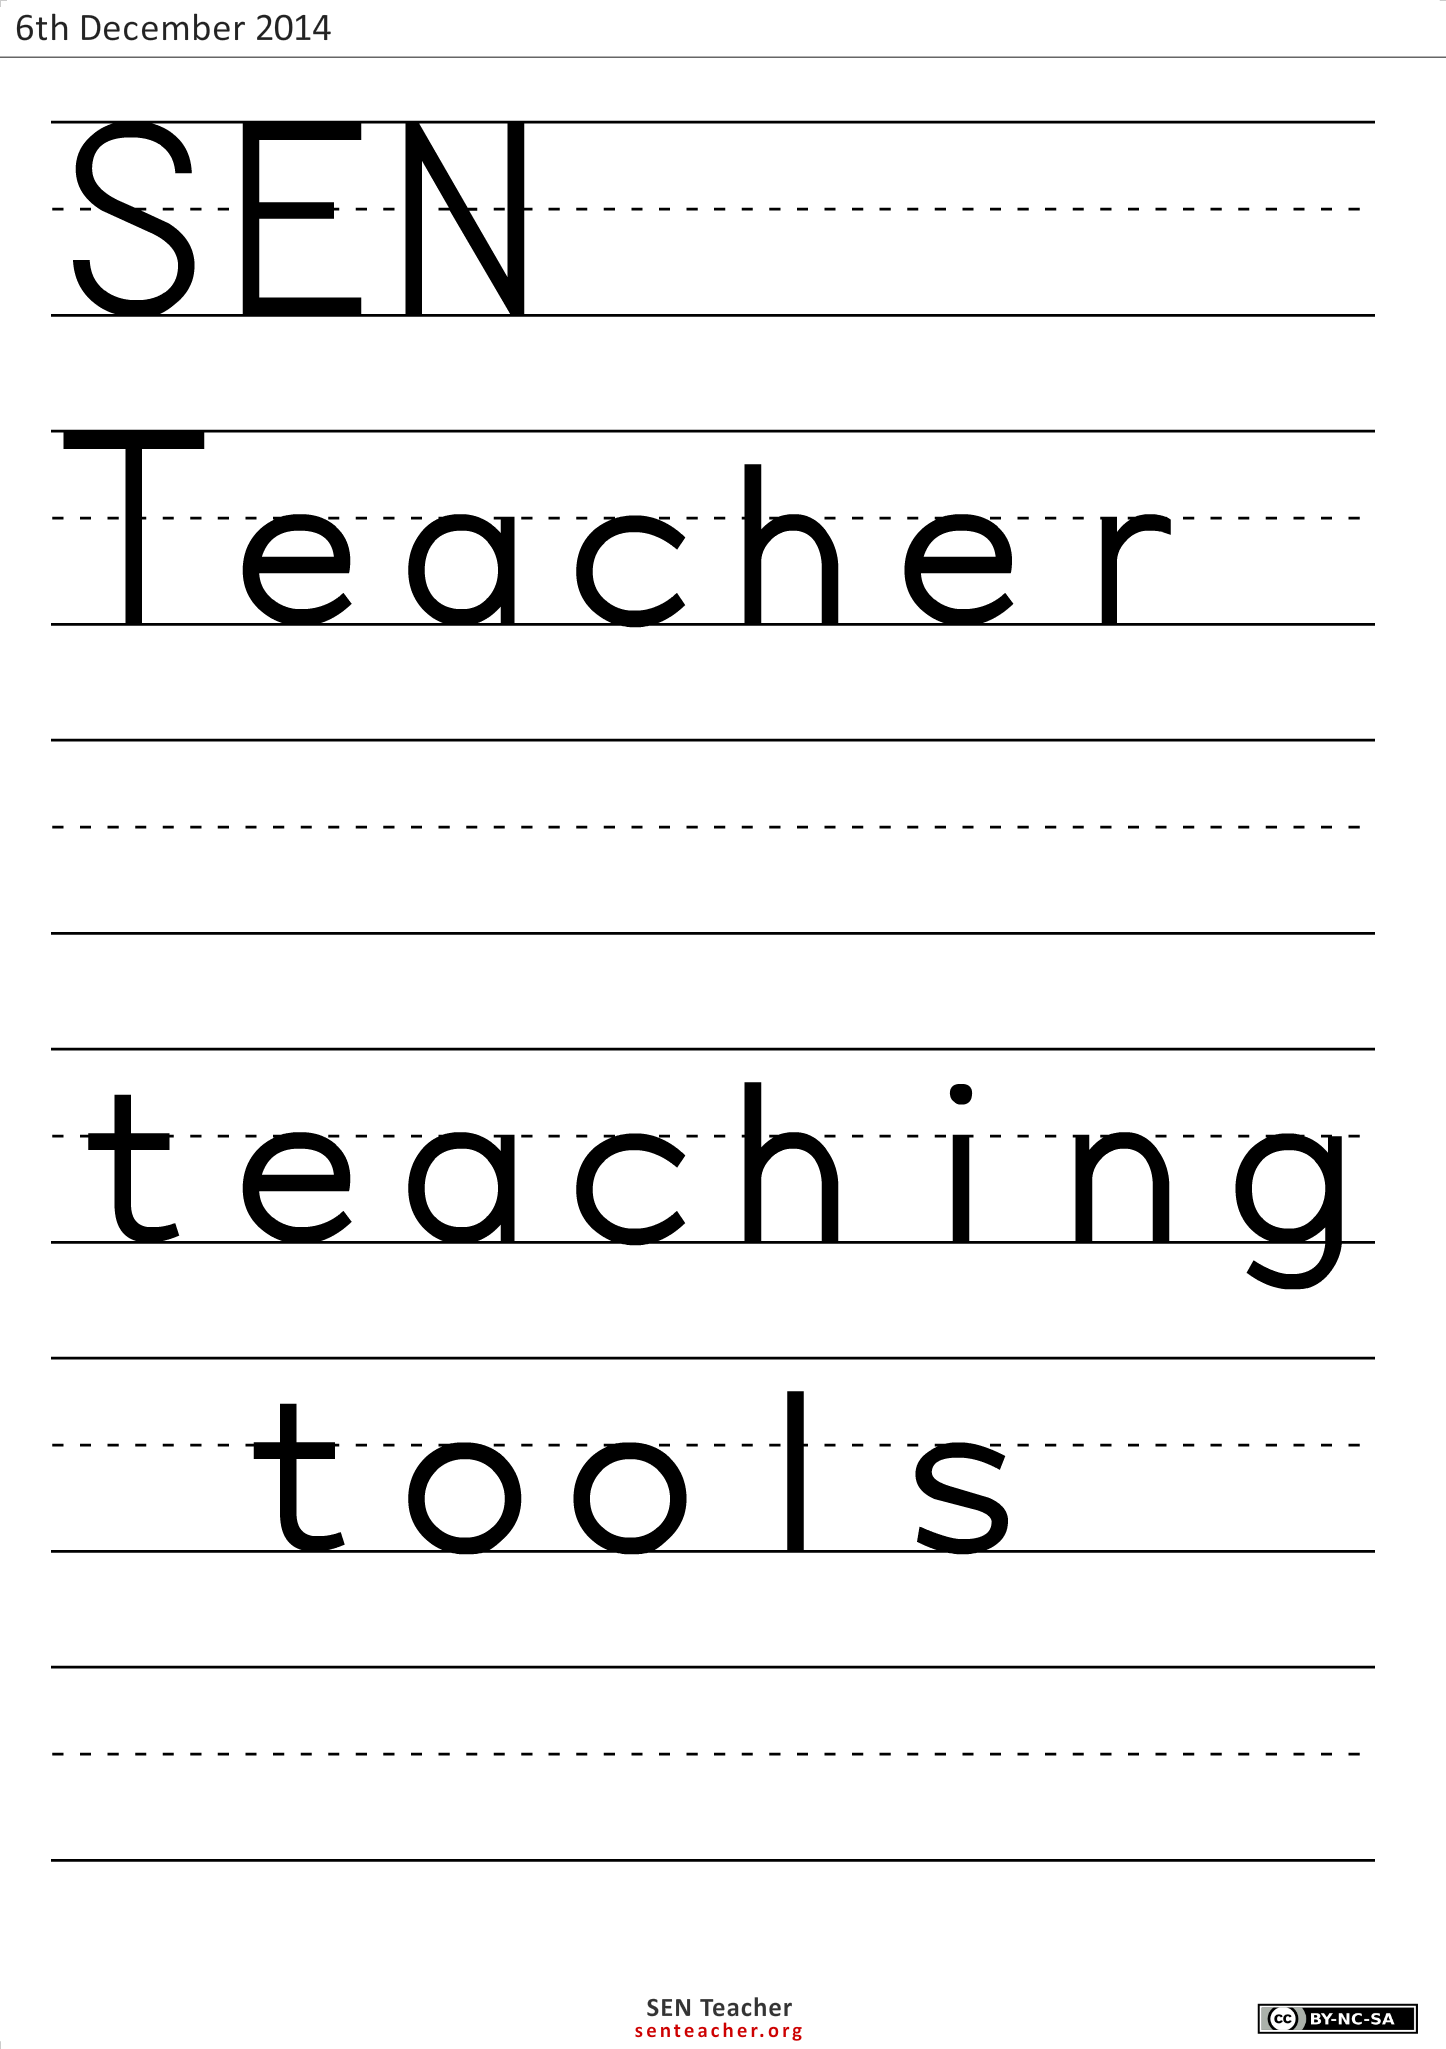 Teaching Tools Materials Creating Your Own Worksheets